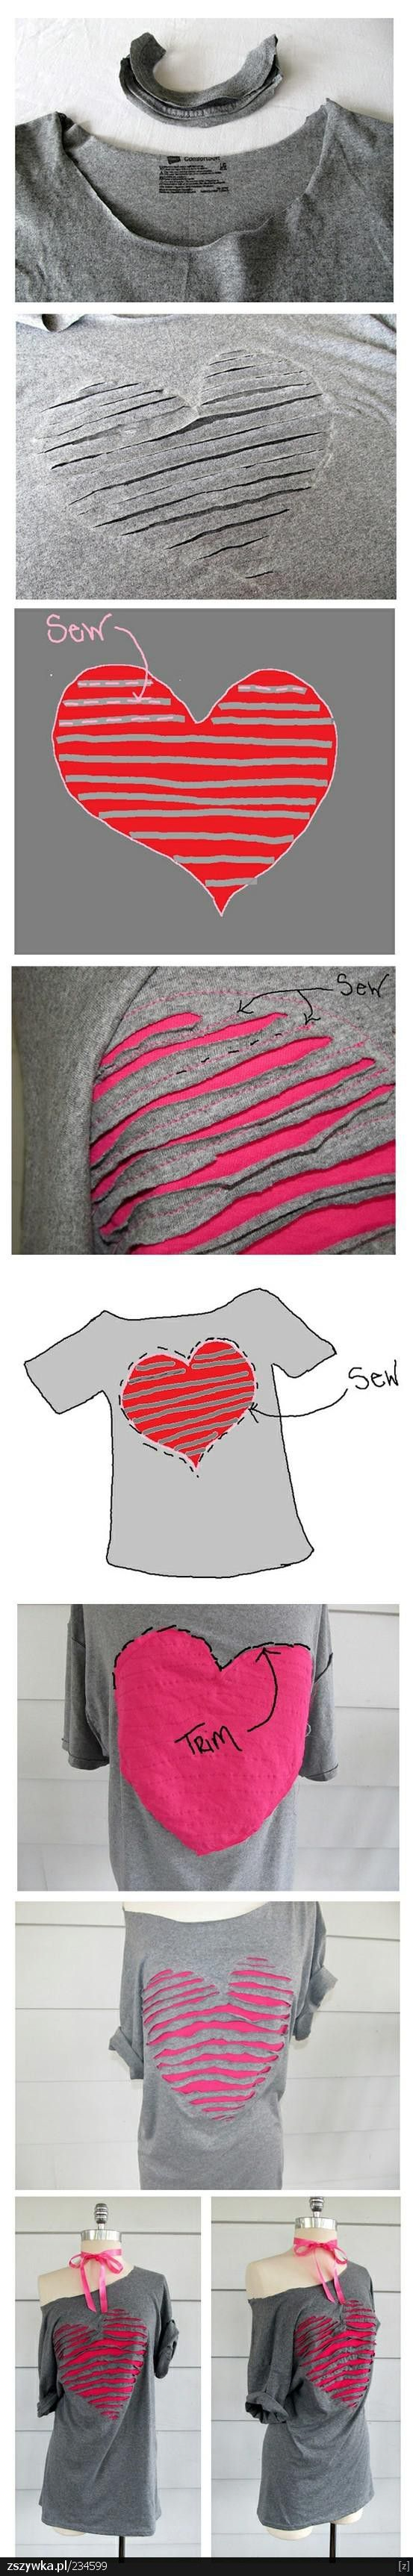 t-shirt re-do diy